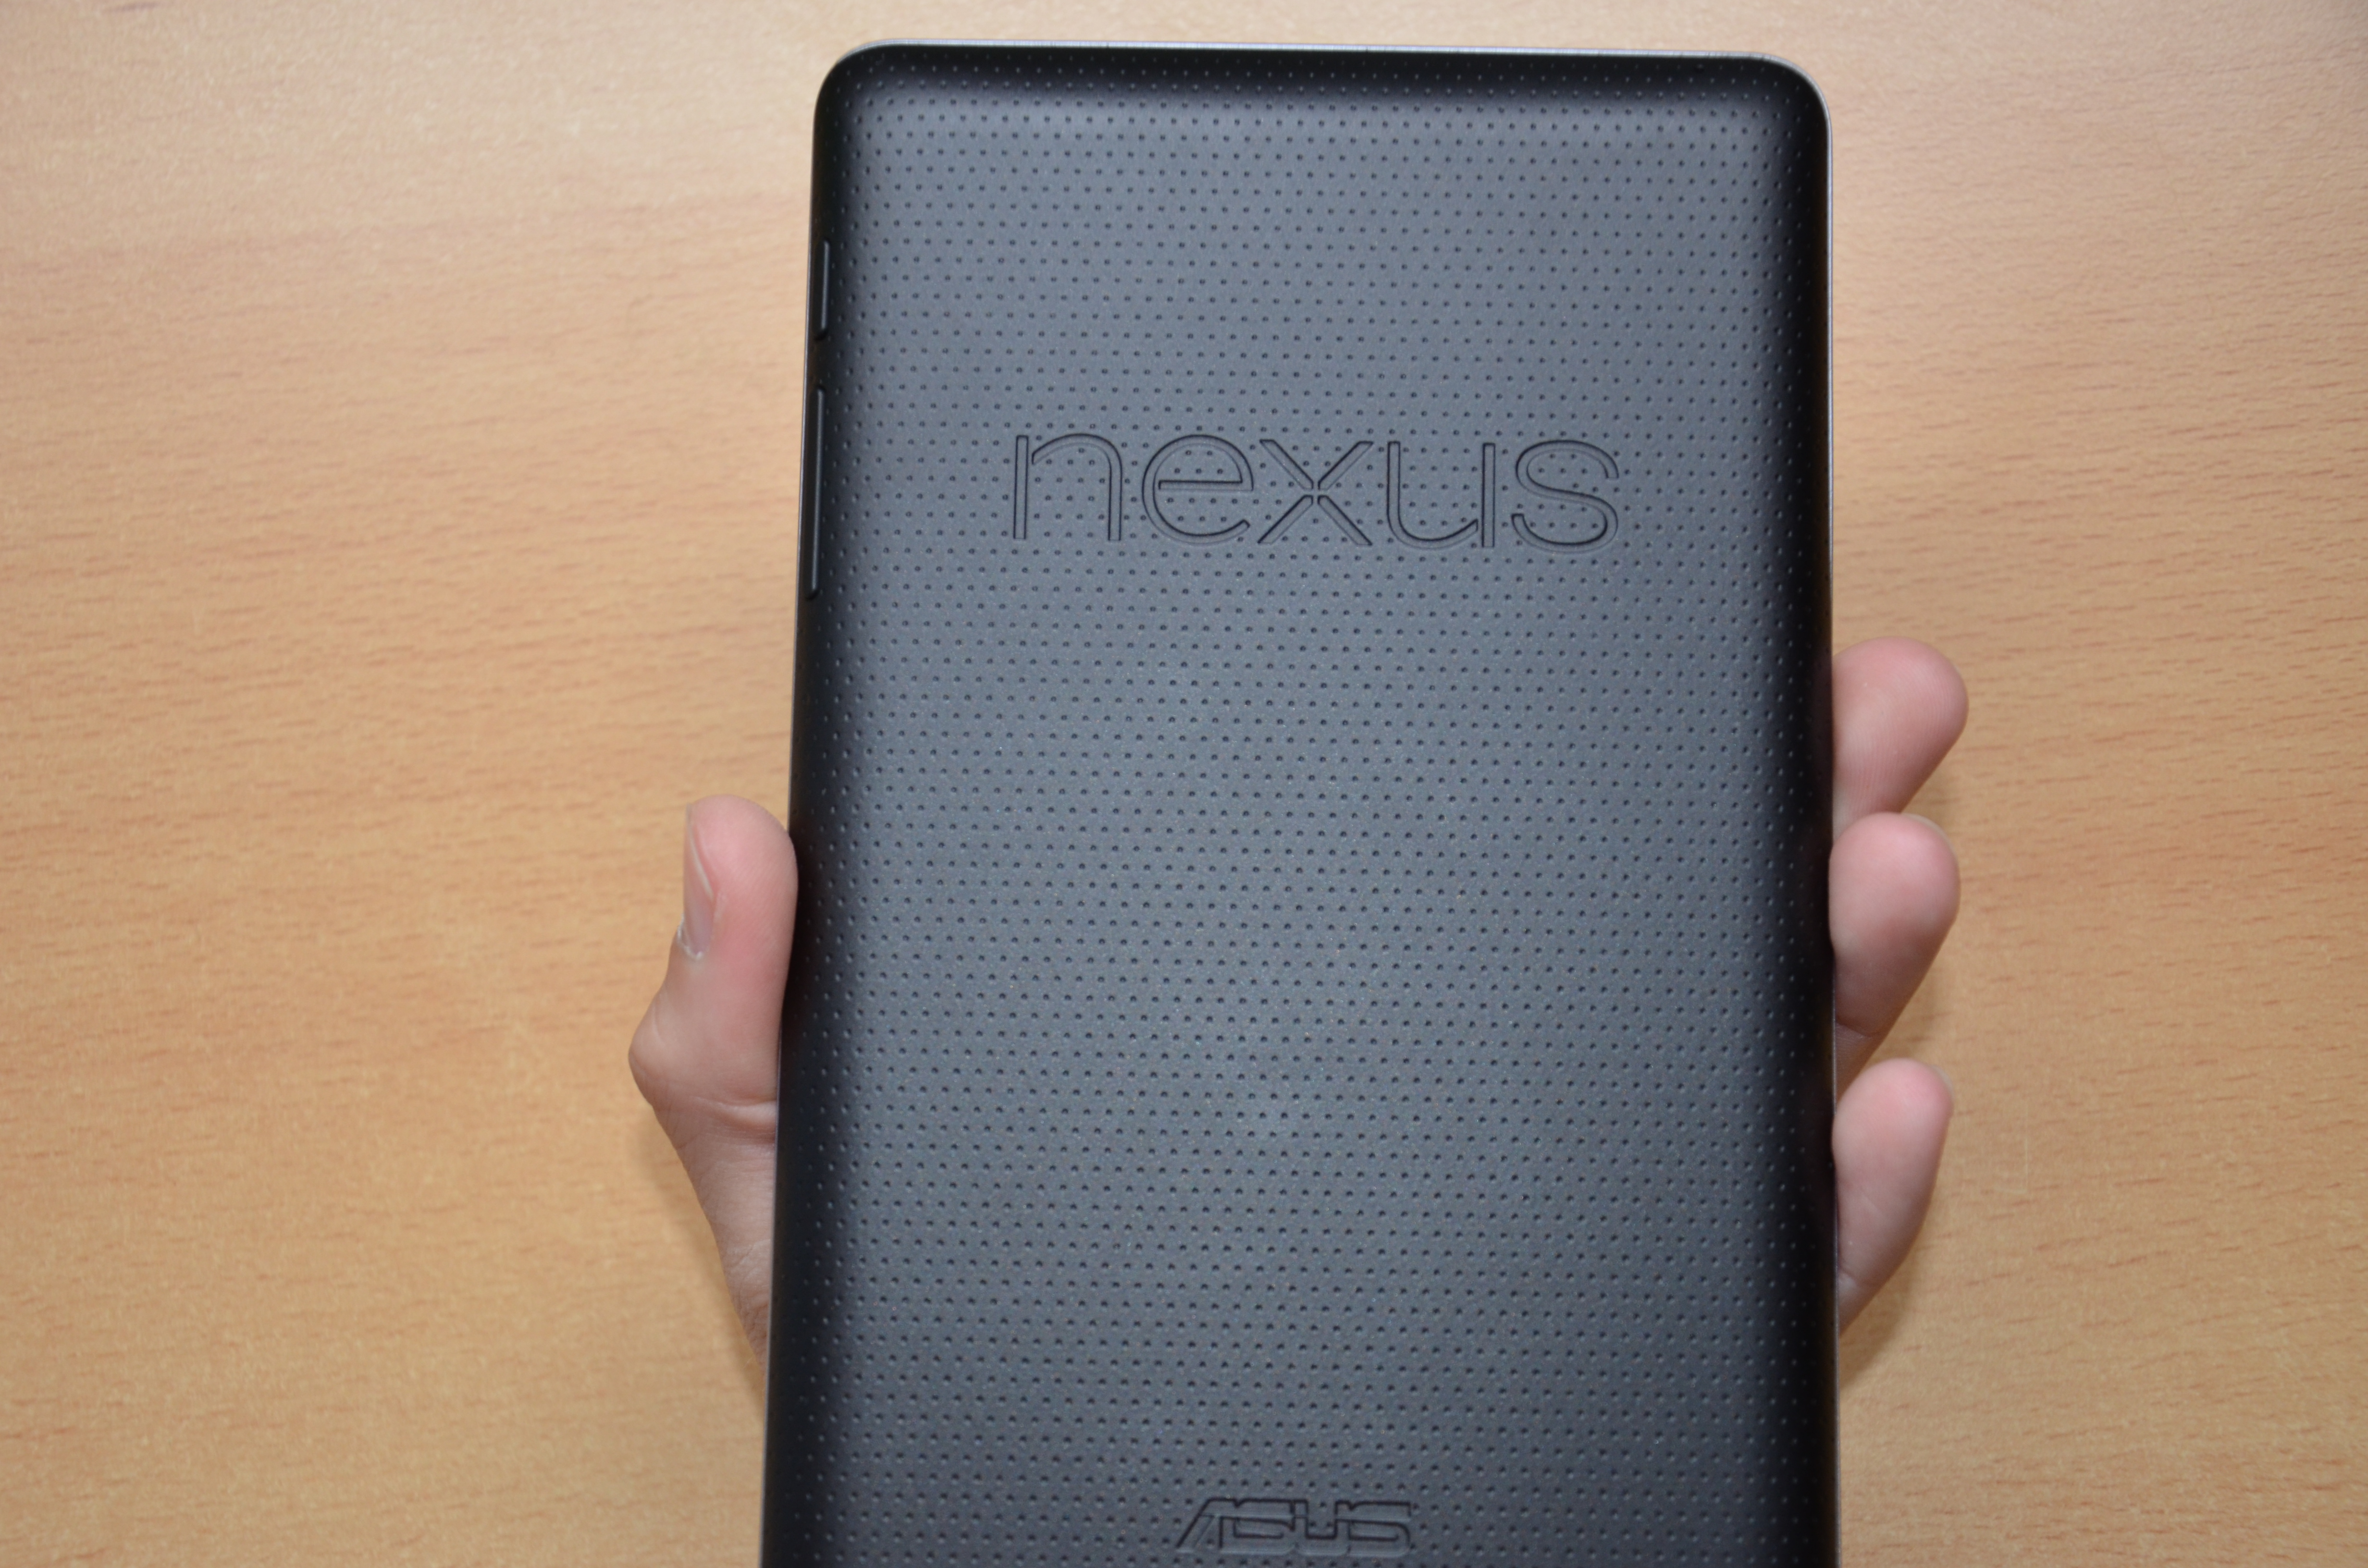 Nexus 7 2012 Box 2012, [57] android 4.3 in